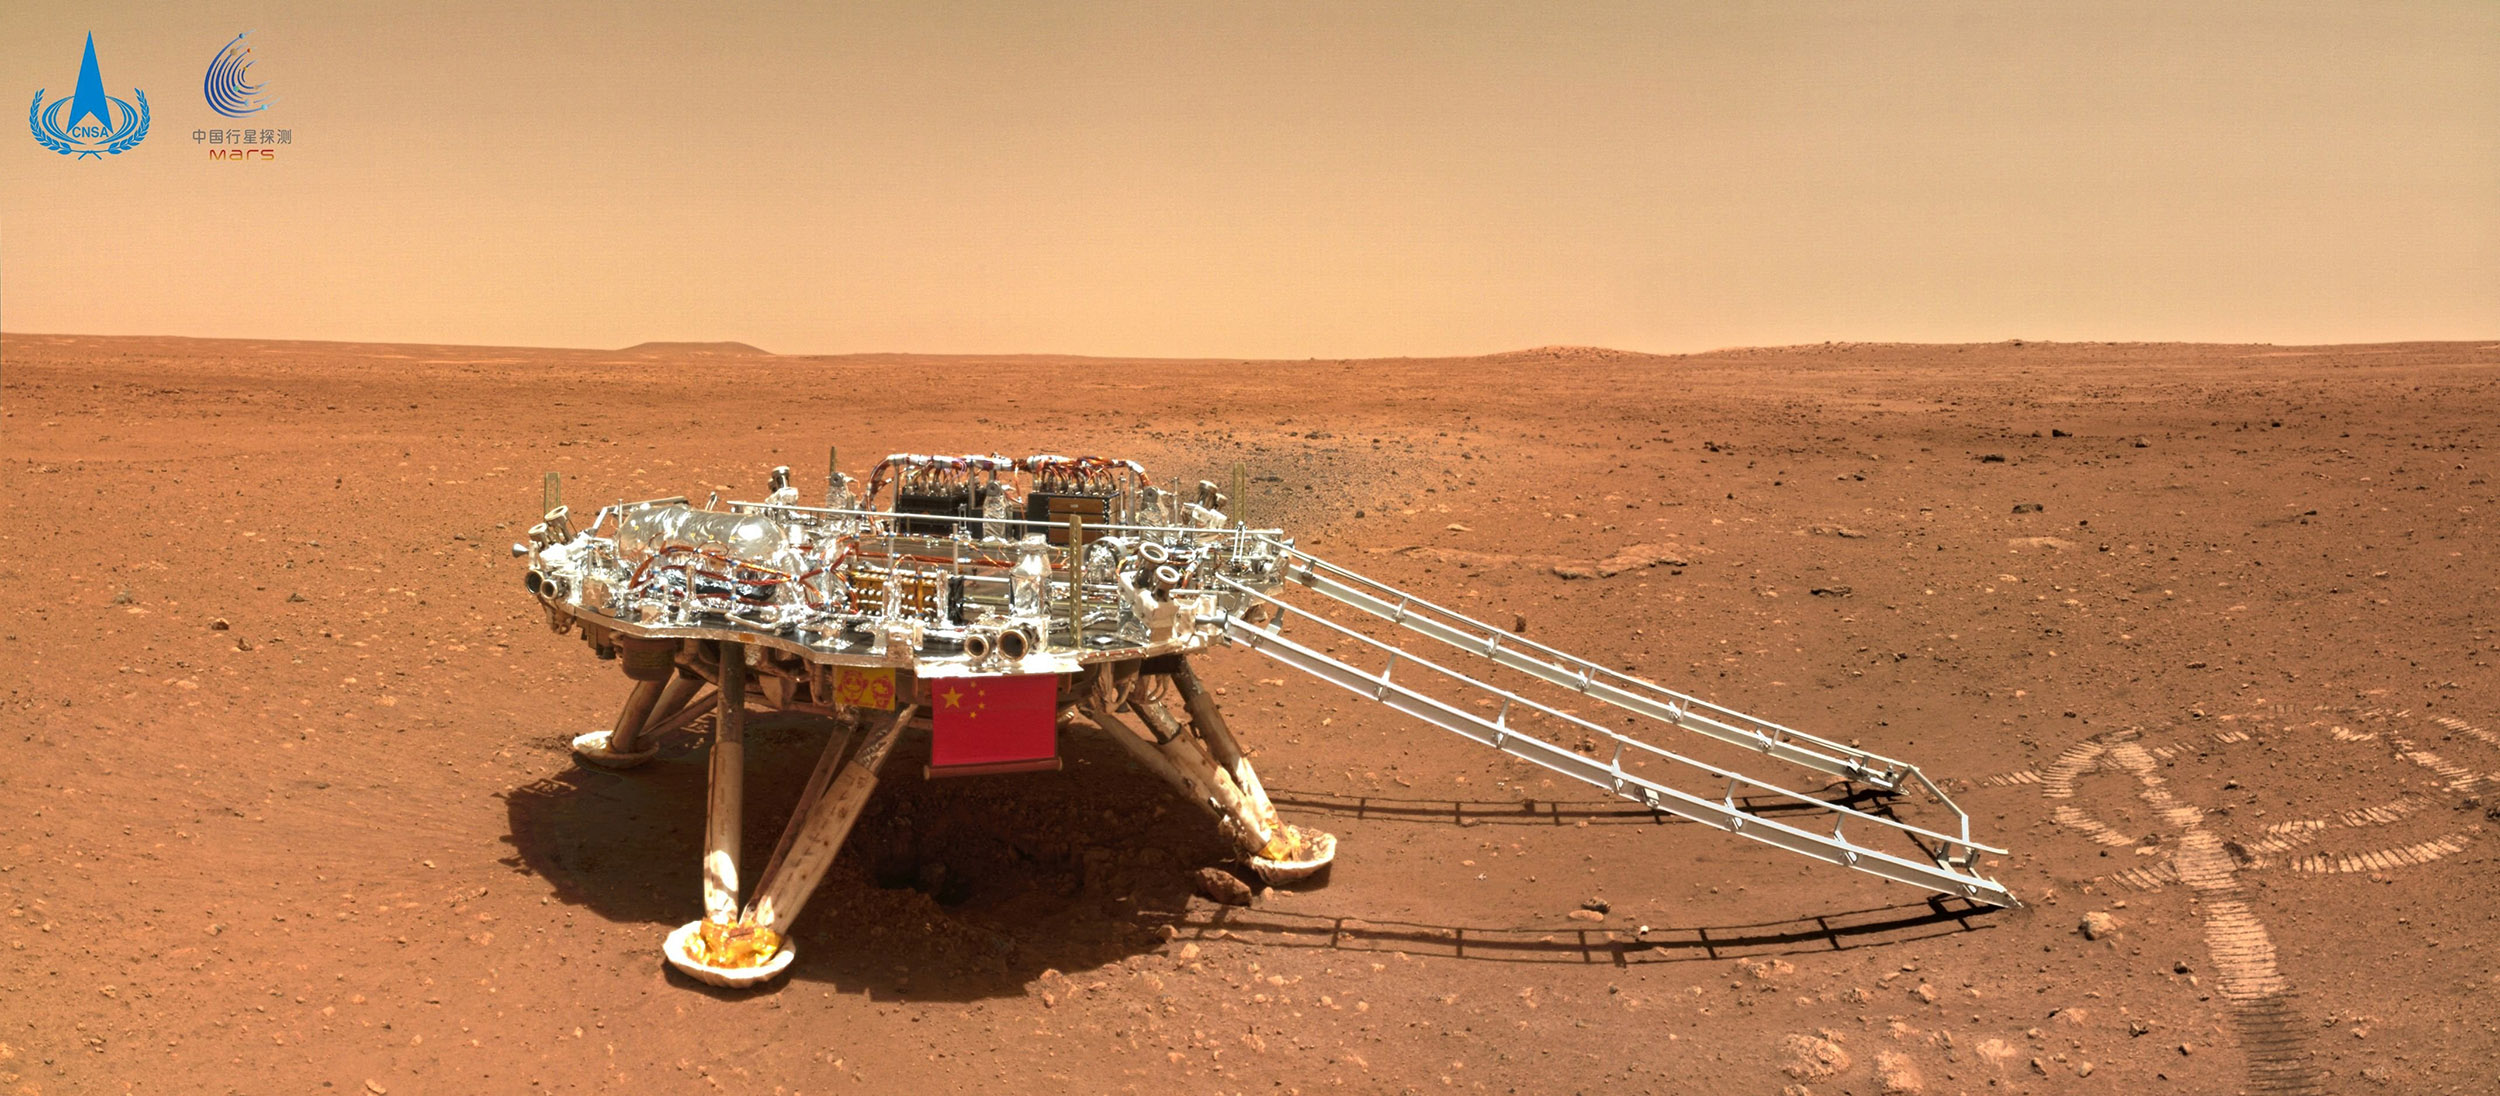 China's Mars rover completes primary mission, continues to explore red planet